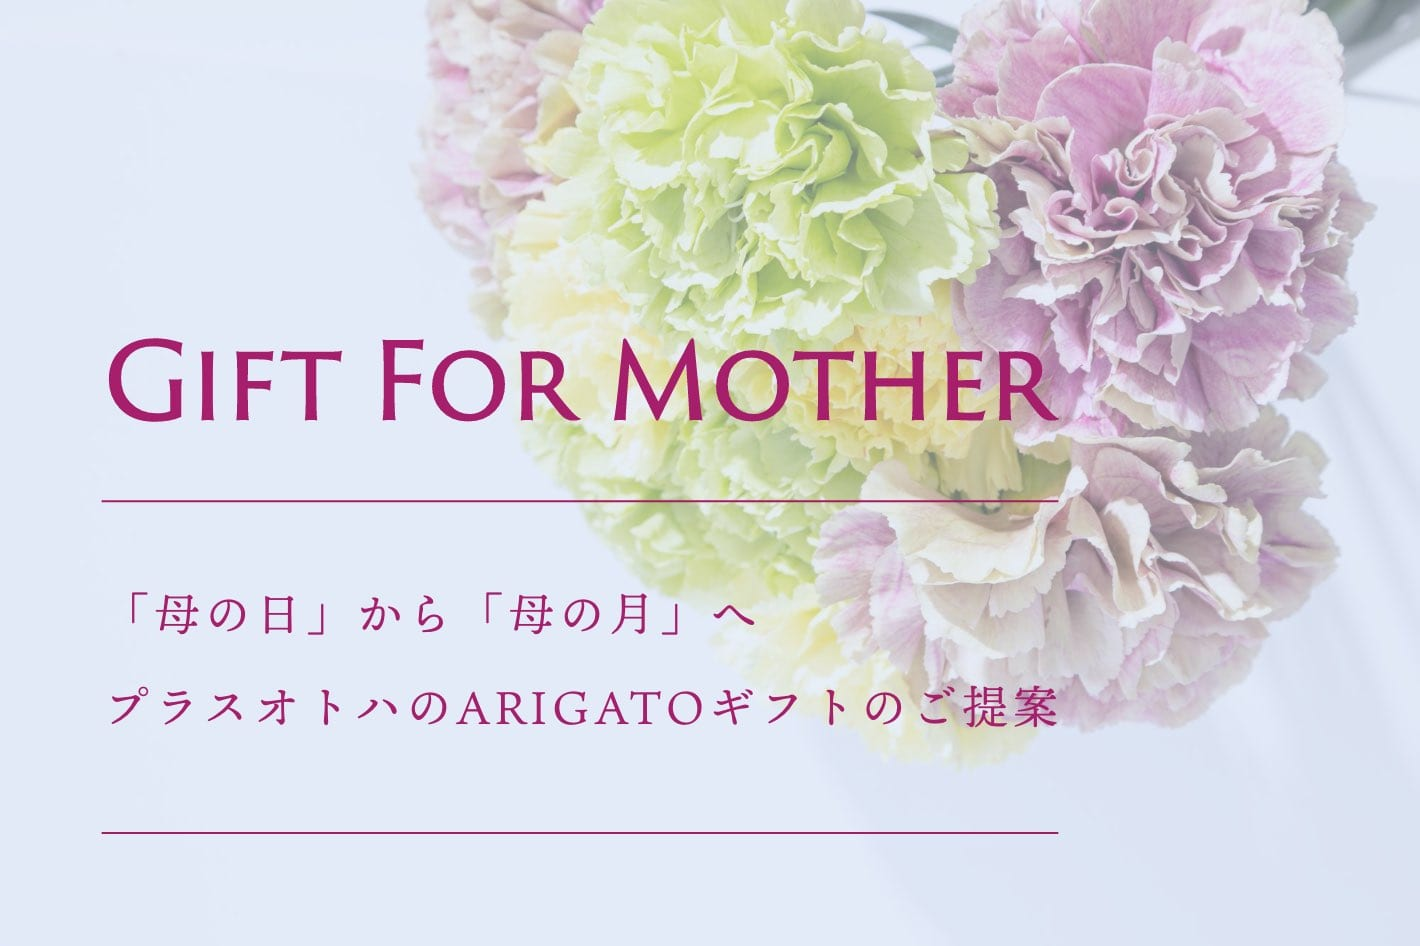 PLUS OTO.HA GIFT FOR HAPPY MOTHER'S DAY